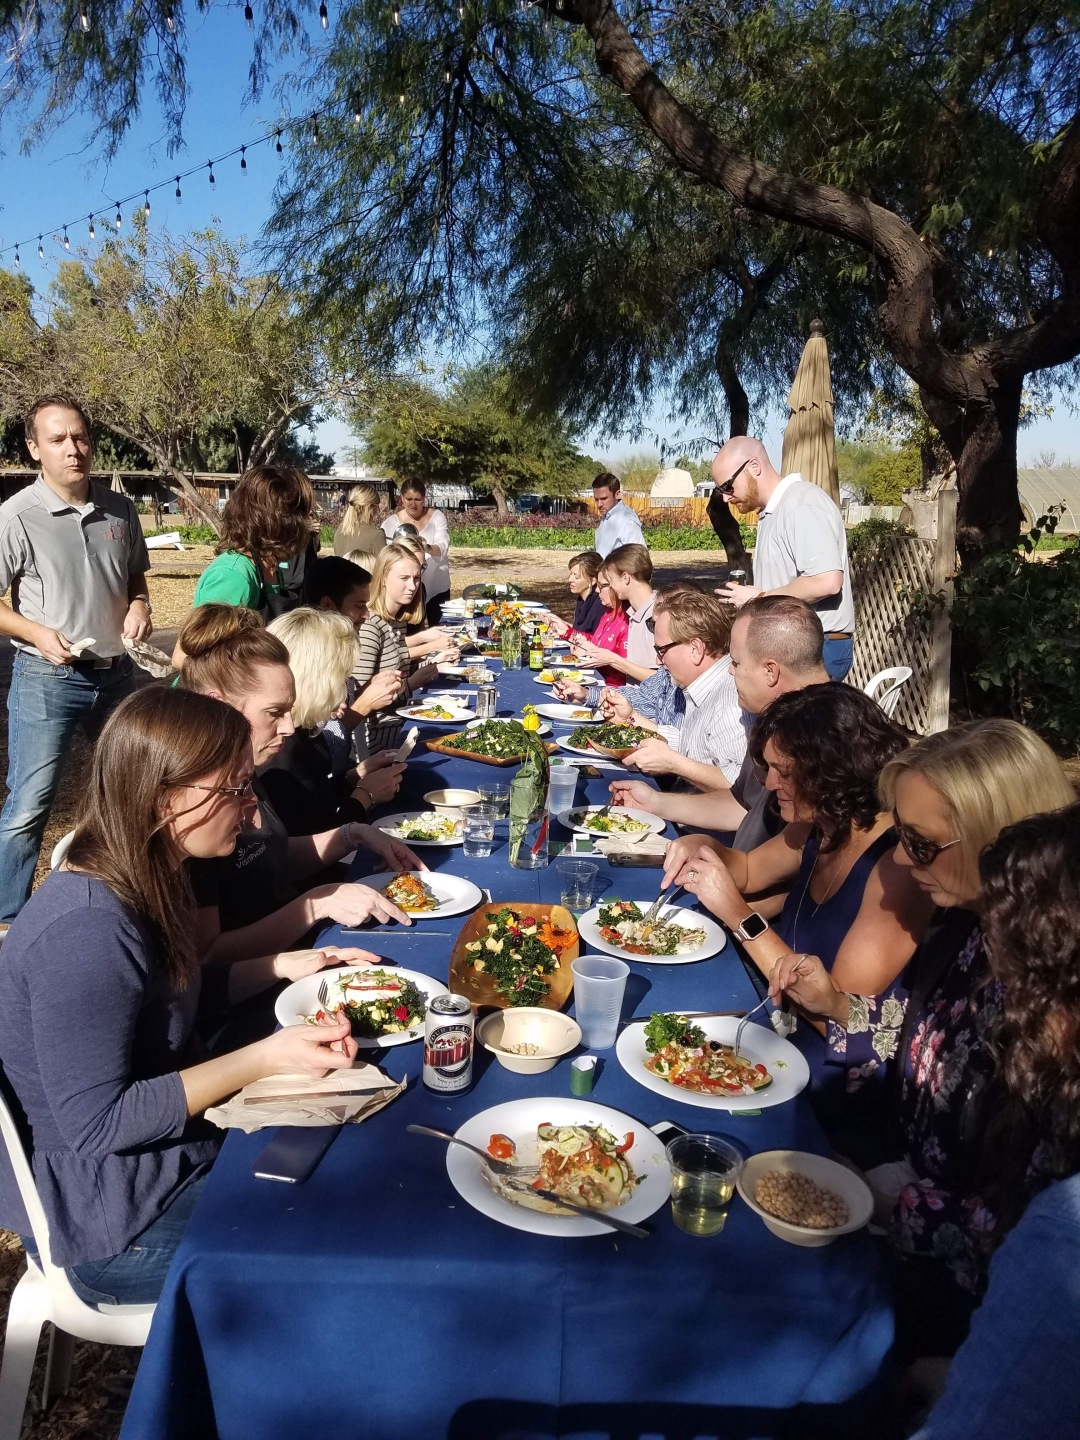 A-11-VisitPhoenix-ExperienceNutrition-TeamBuilding-Eating-IMG_2116